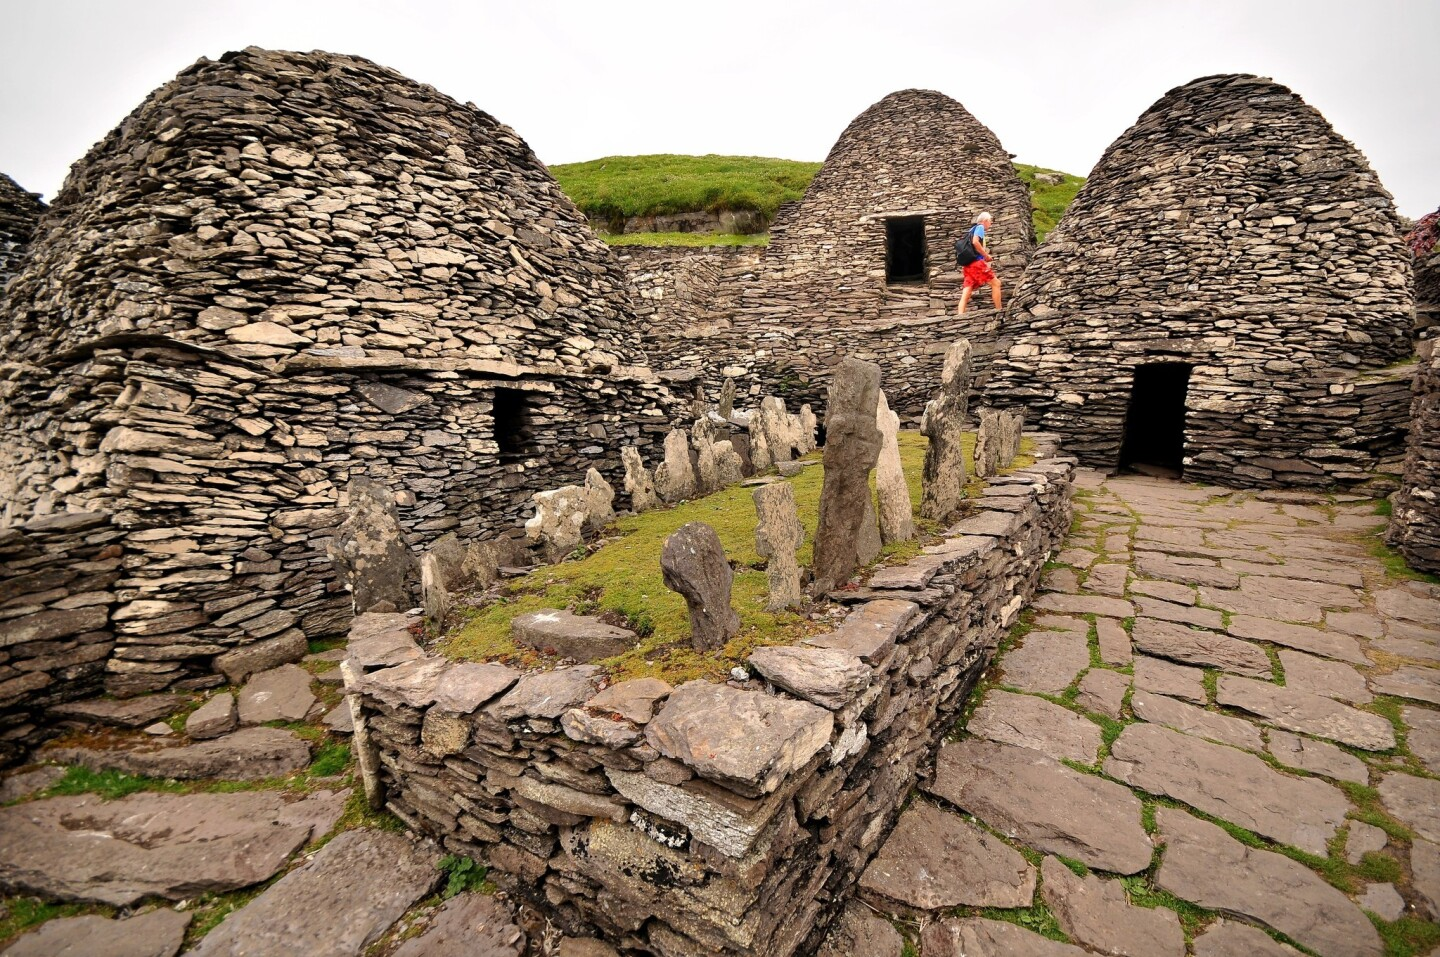 Skellig Michael, an island about 8 miles off the coast, has beehive-shaped structures that were built by Christian monks and date back to the 7th century.